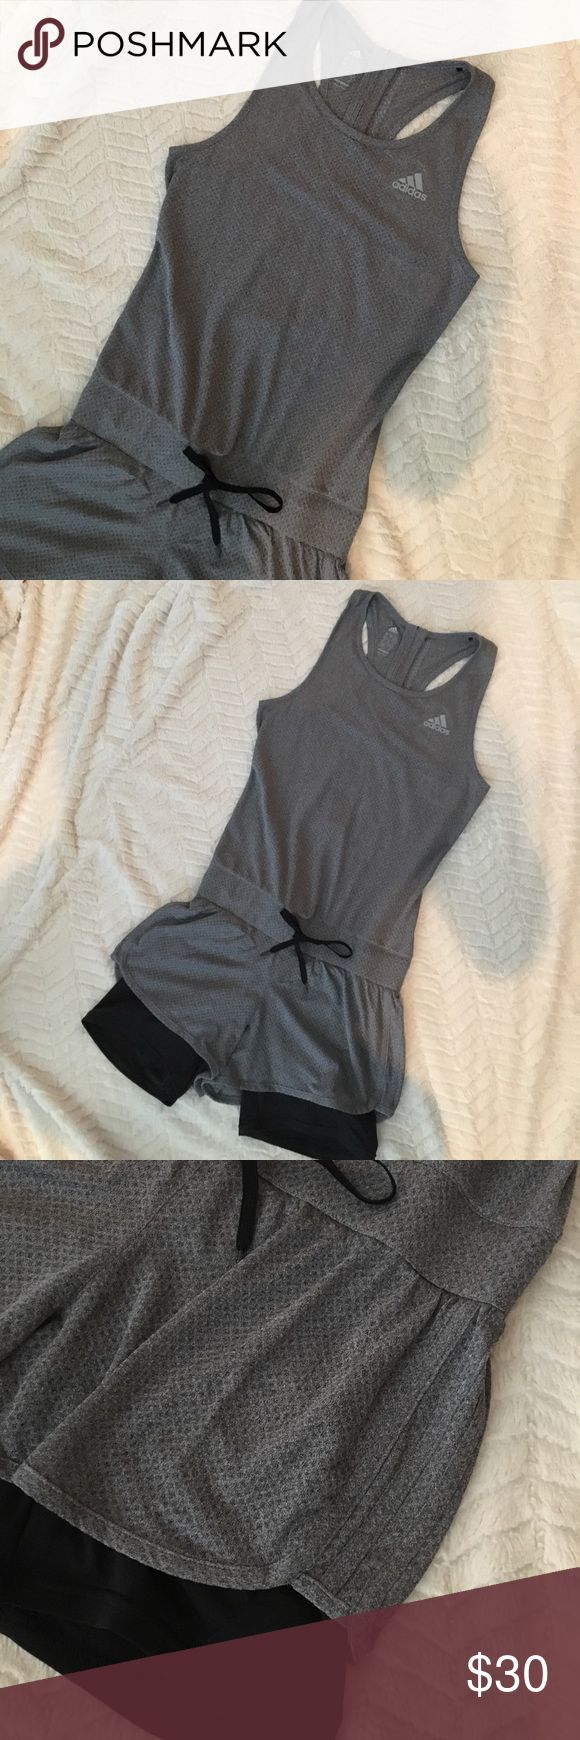 RARE  /// Adidas Romper EUC Climacool running romper. Back zipper with elastic waistband and drawstring. Small back zipper pocket. Built-in spandex legs. Stylish and practical for the fitness junkie. Extra small can fit 0-4. Adidas Other